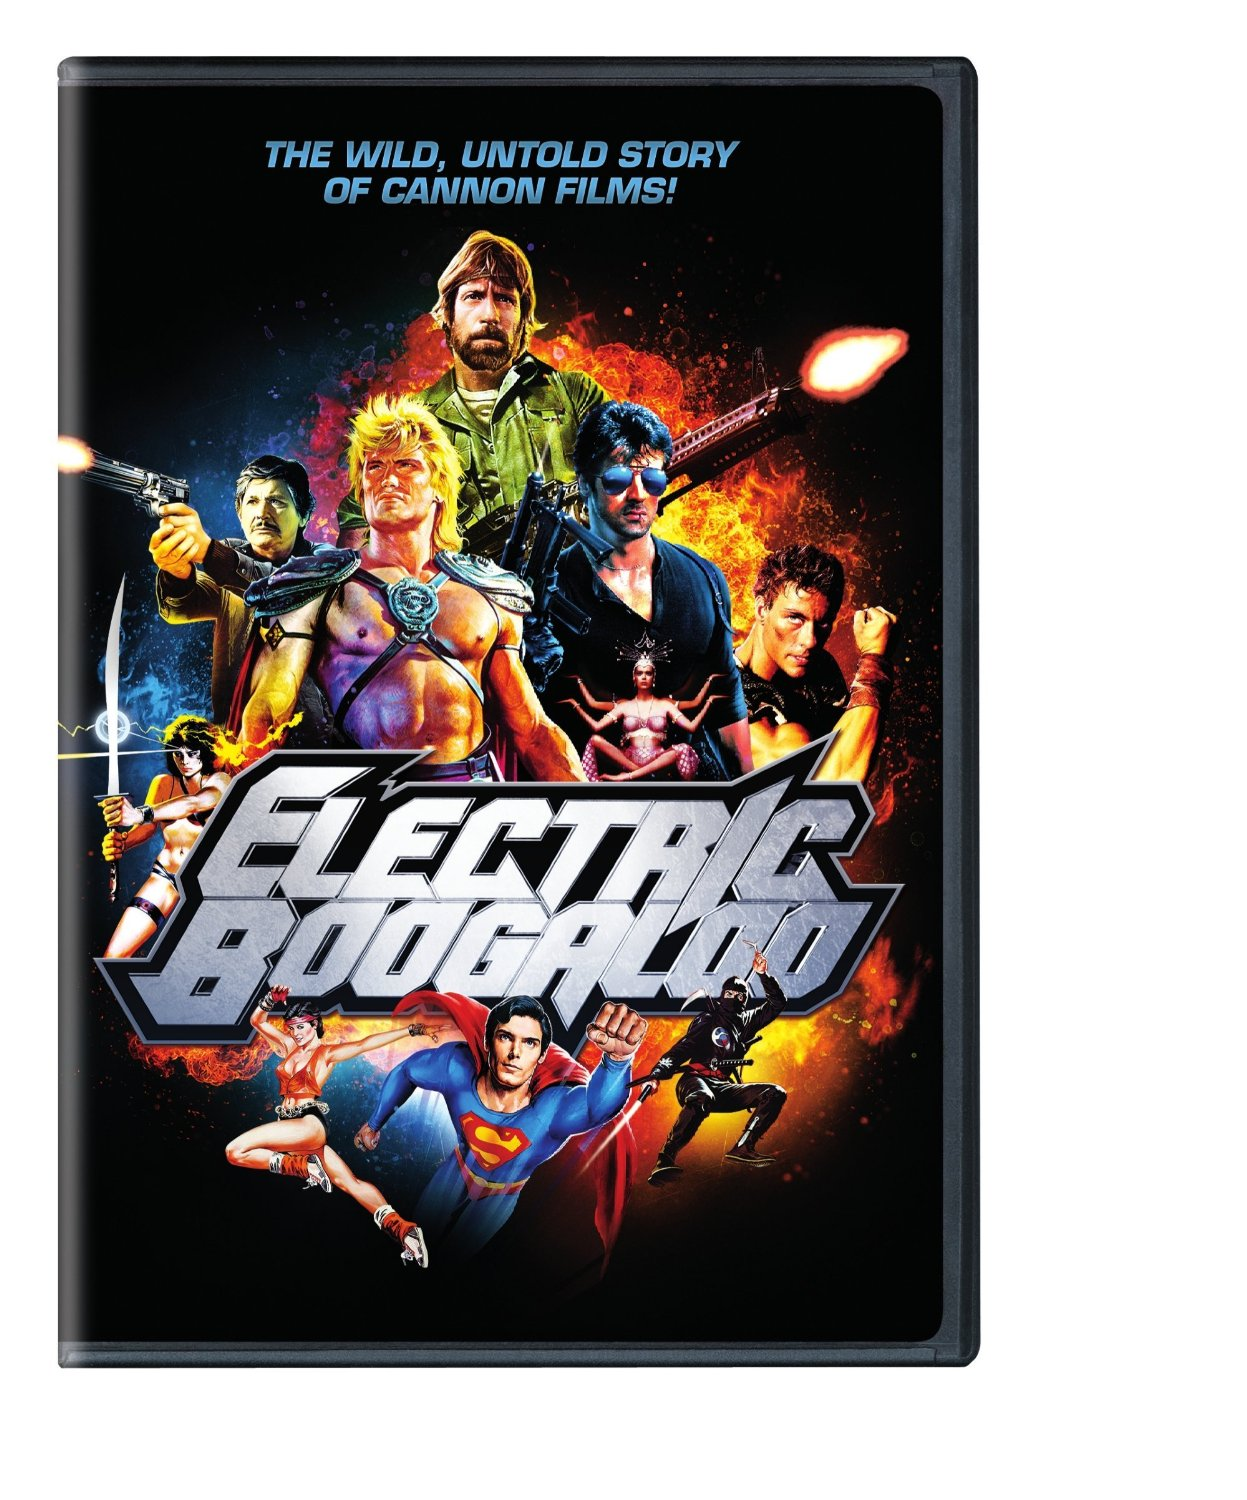 Electric Boogaloo [Movie] - Electric Boogaloo: The Wild, Untold Story of Cannon Films